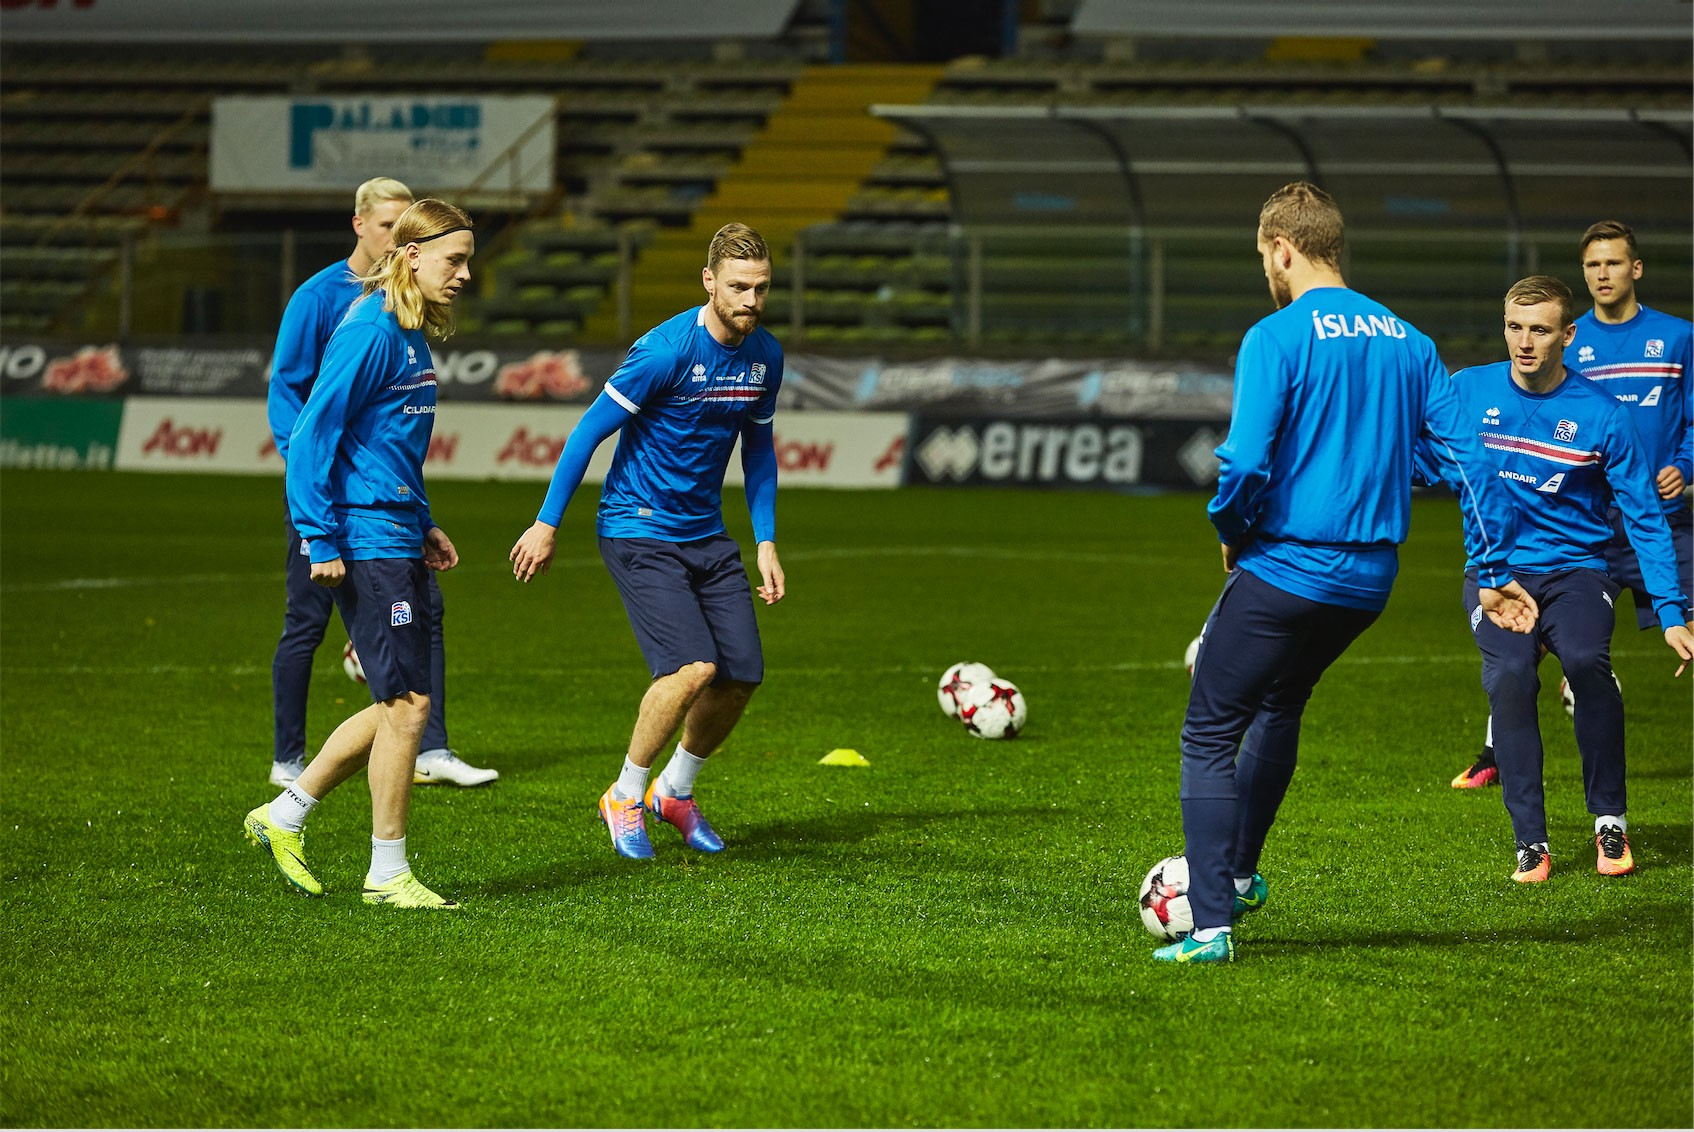 2018 World Cup Qualifiers: Friday 6 October, Iceland - Turkey!